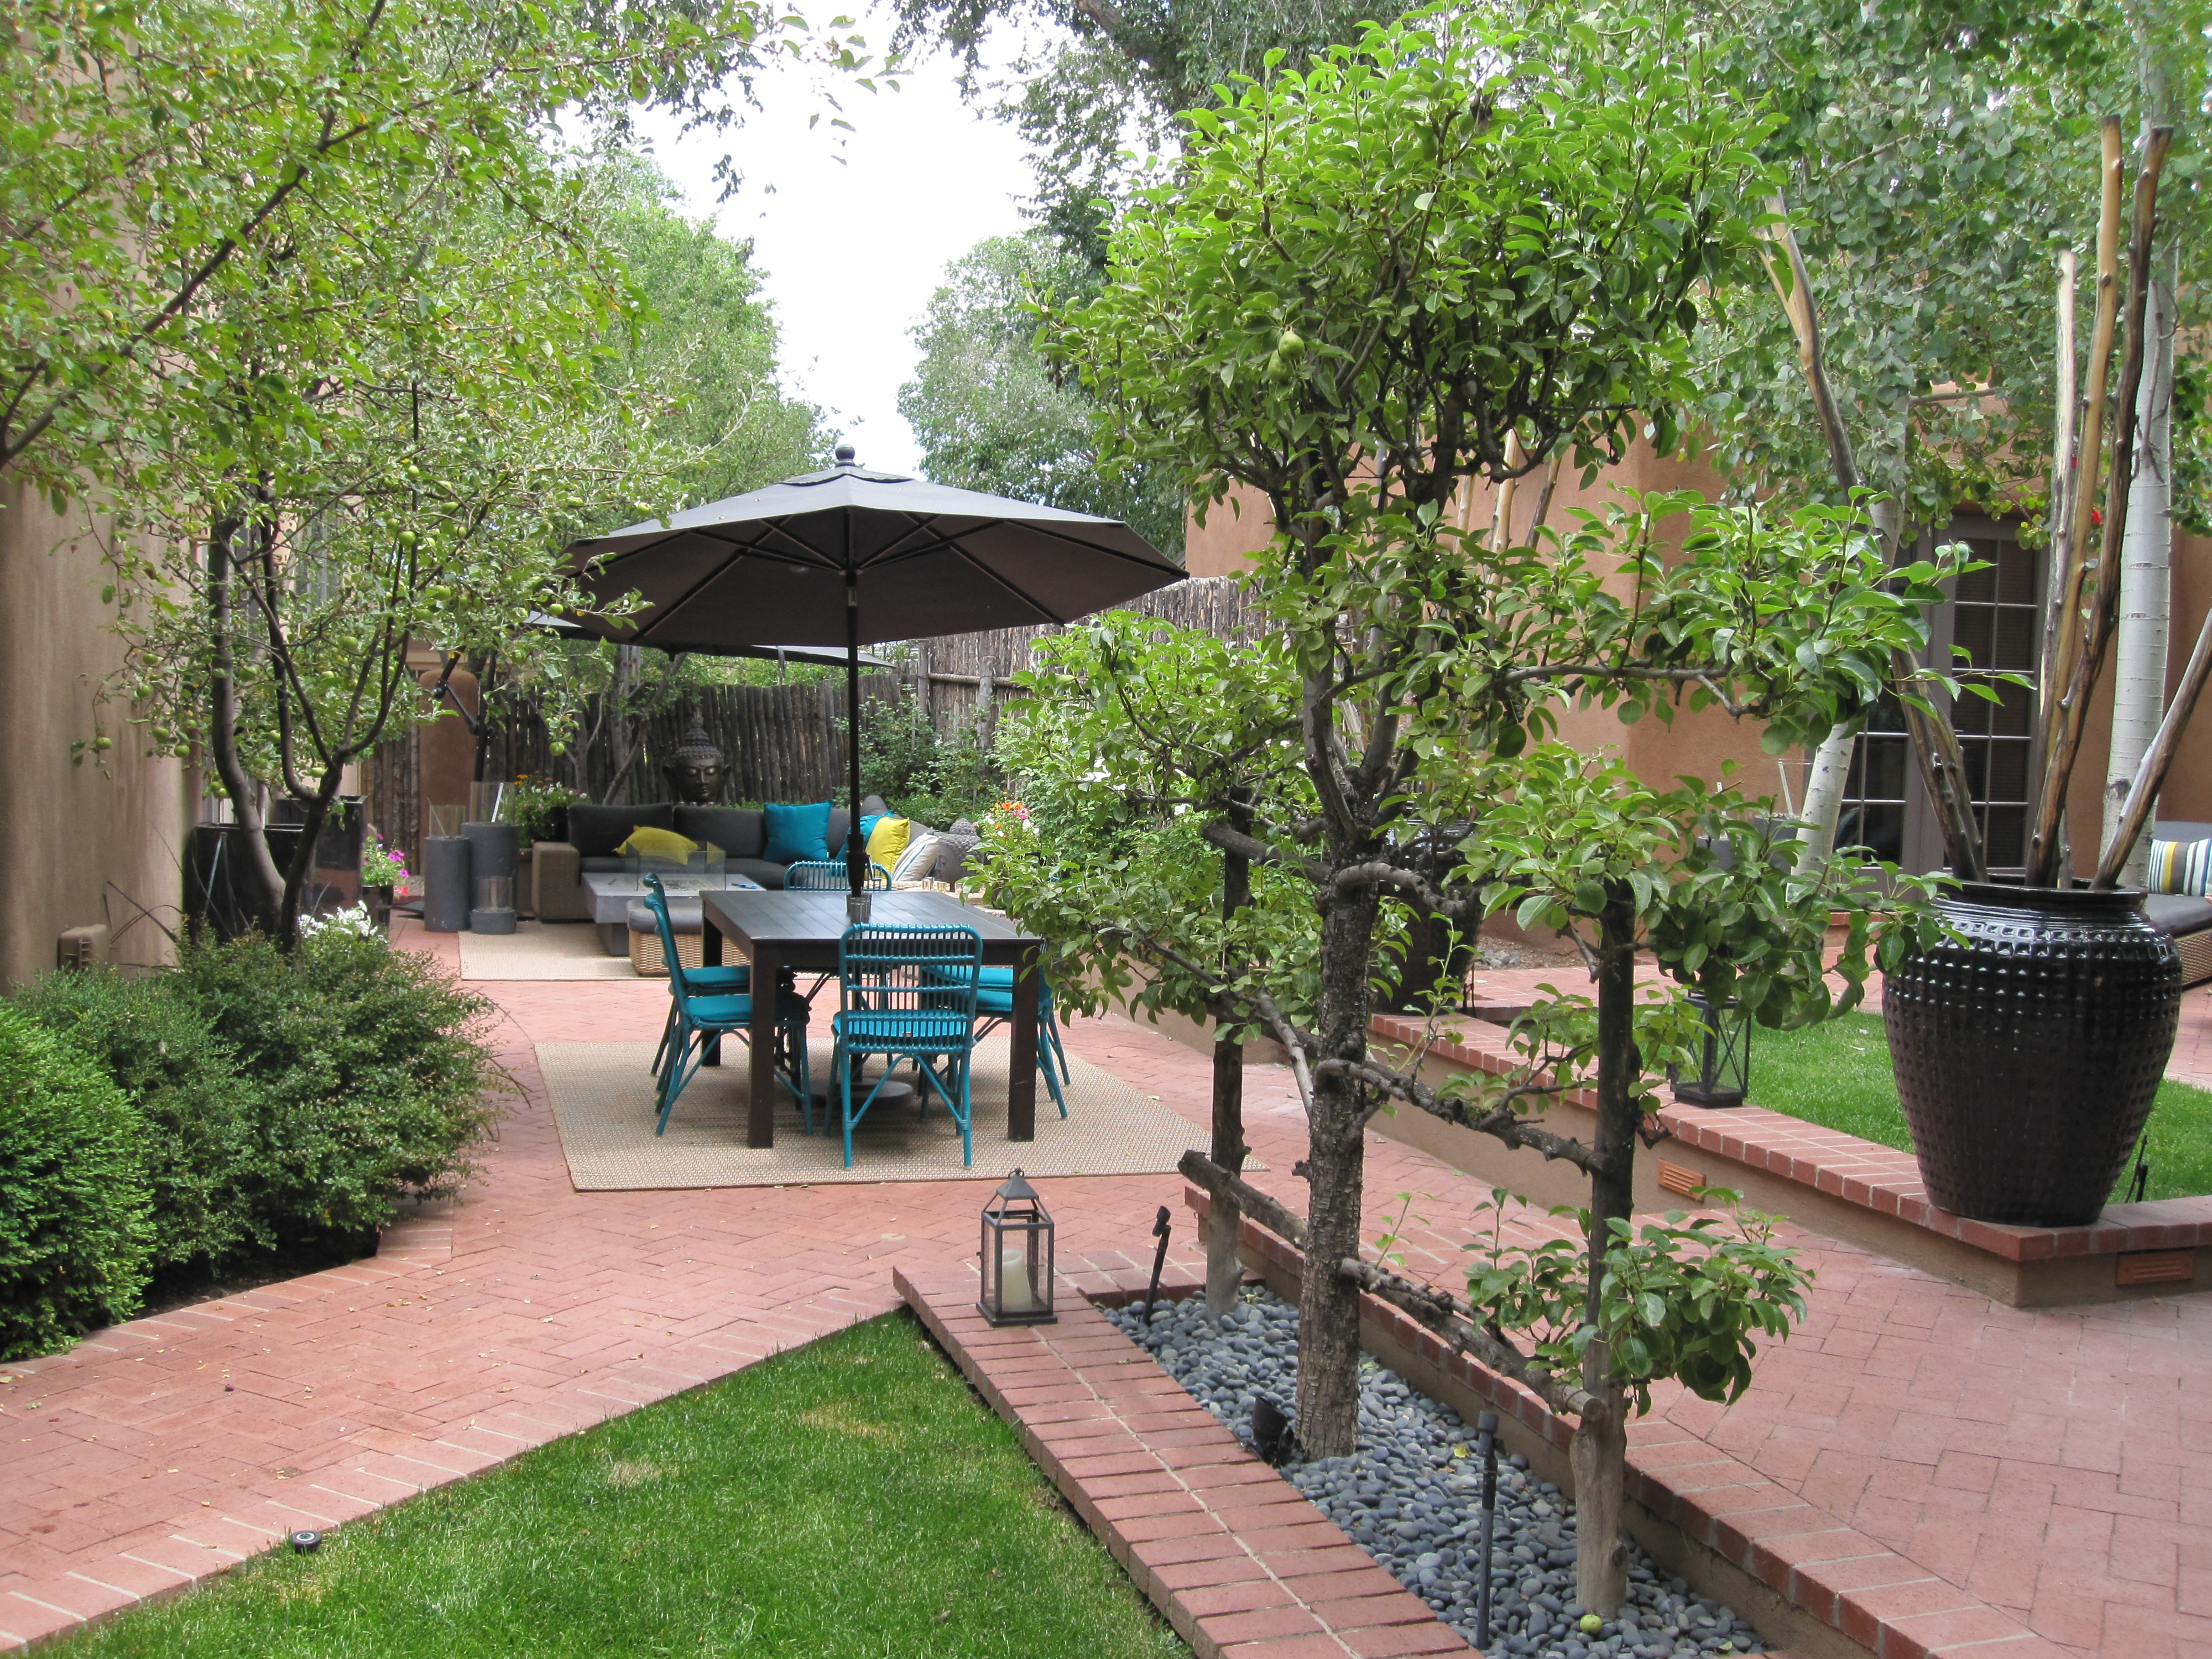 Our casita on Canyon Road in Santa Fe, NM